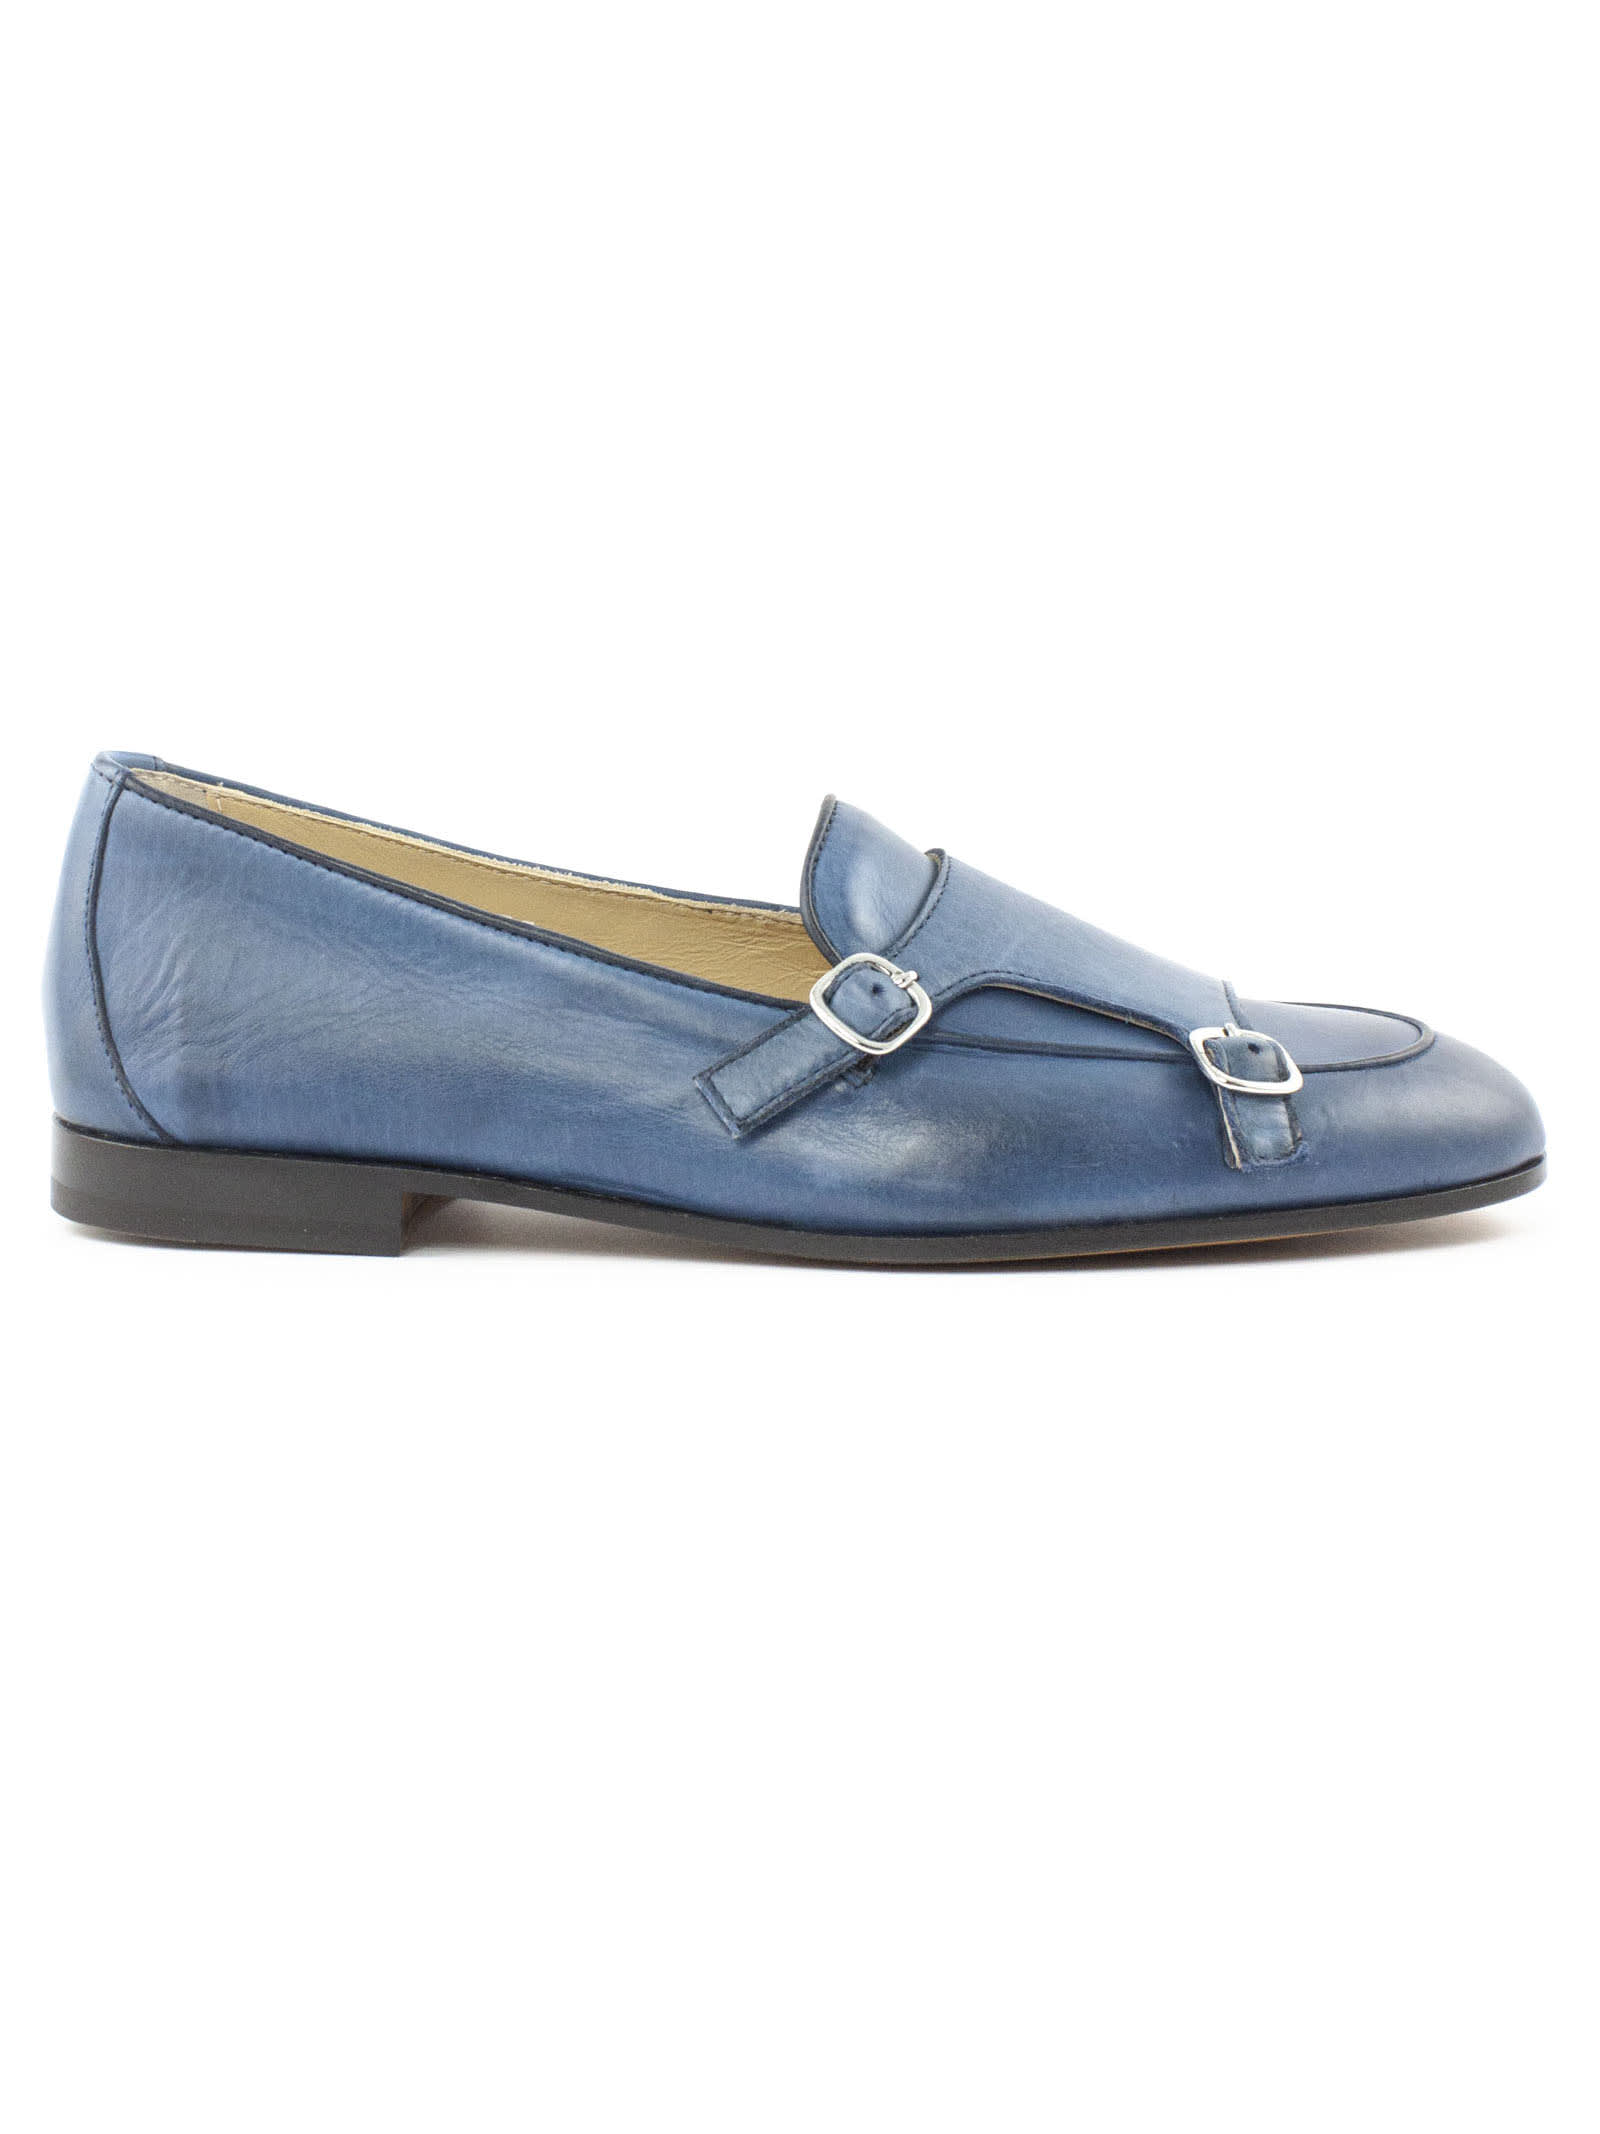 Doucals Light Blue Leather Loafer